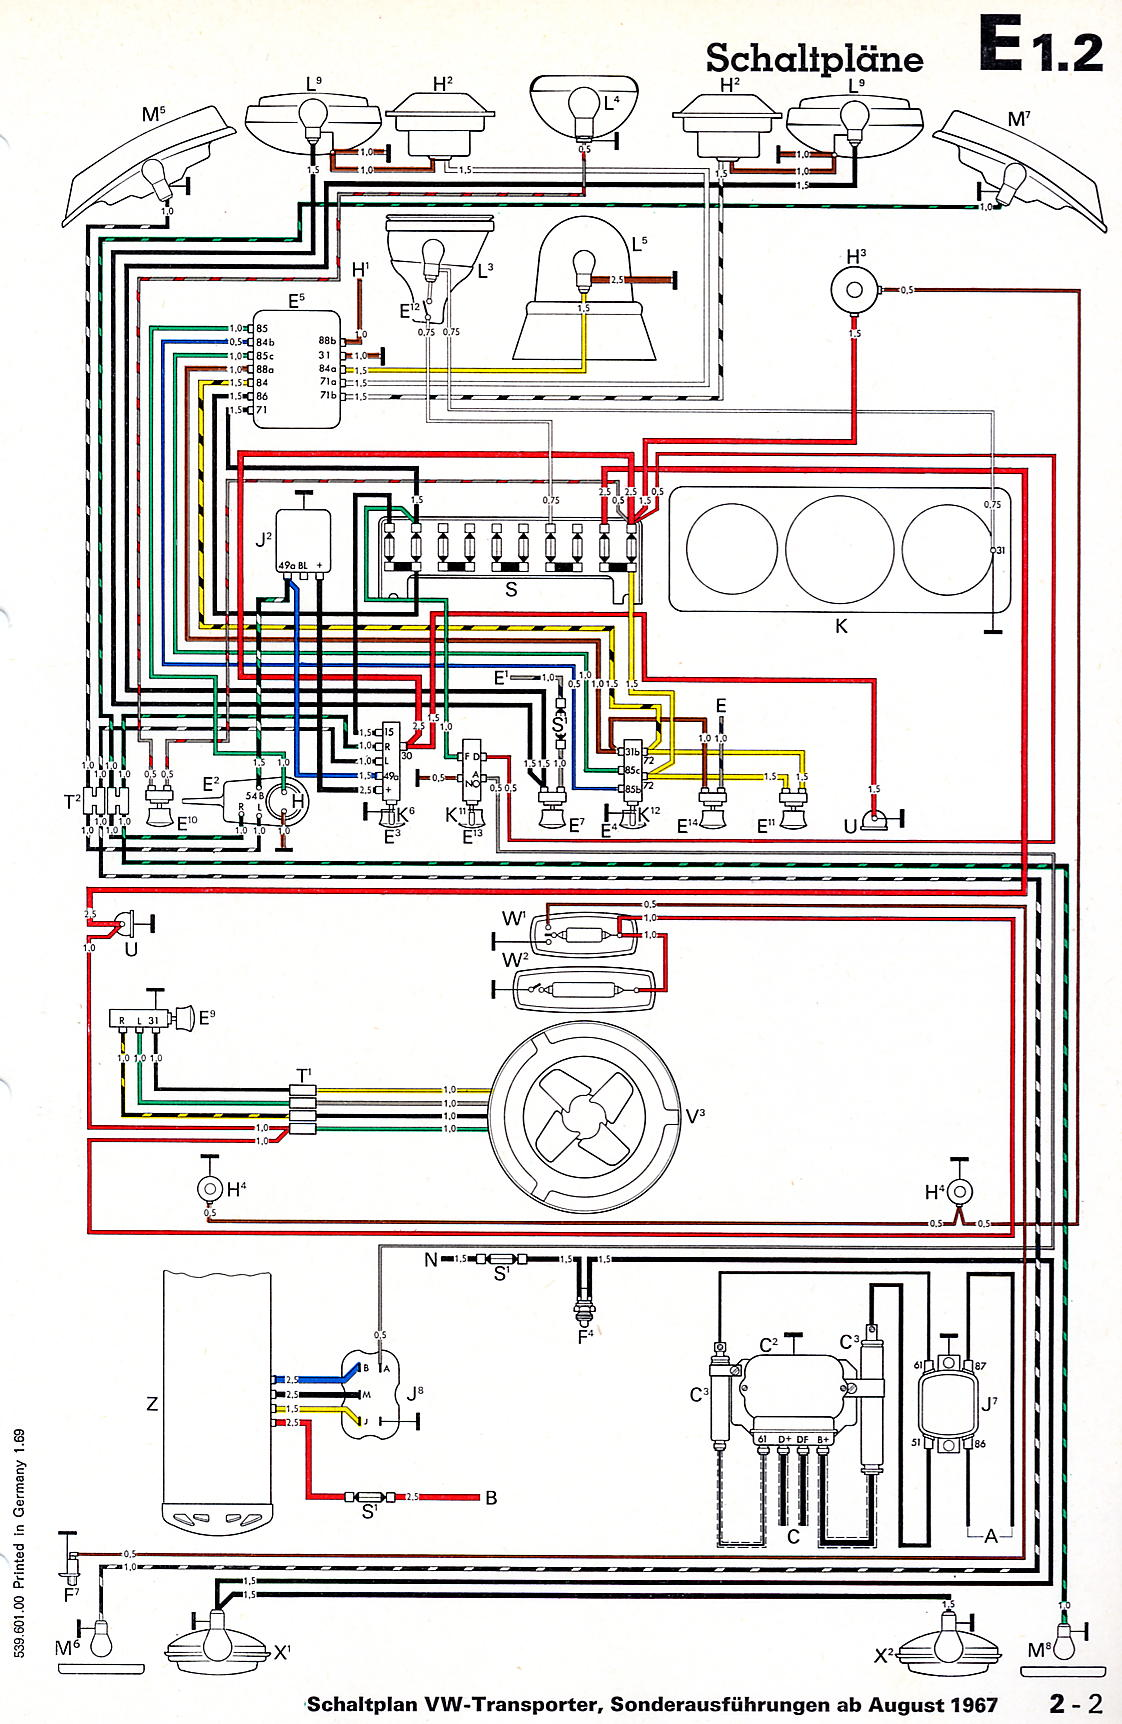 69 Vw Van Wiring Library Apc 20kva 208v Diagram Vintagebus Com Bus And Other Diagrams Bug